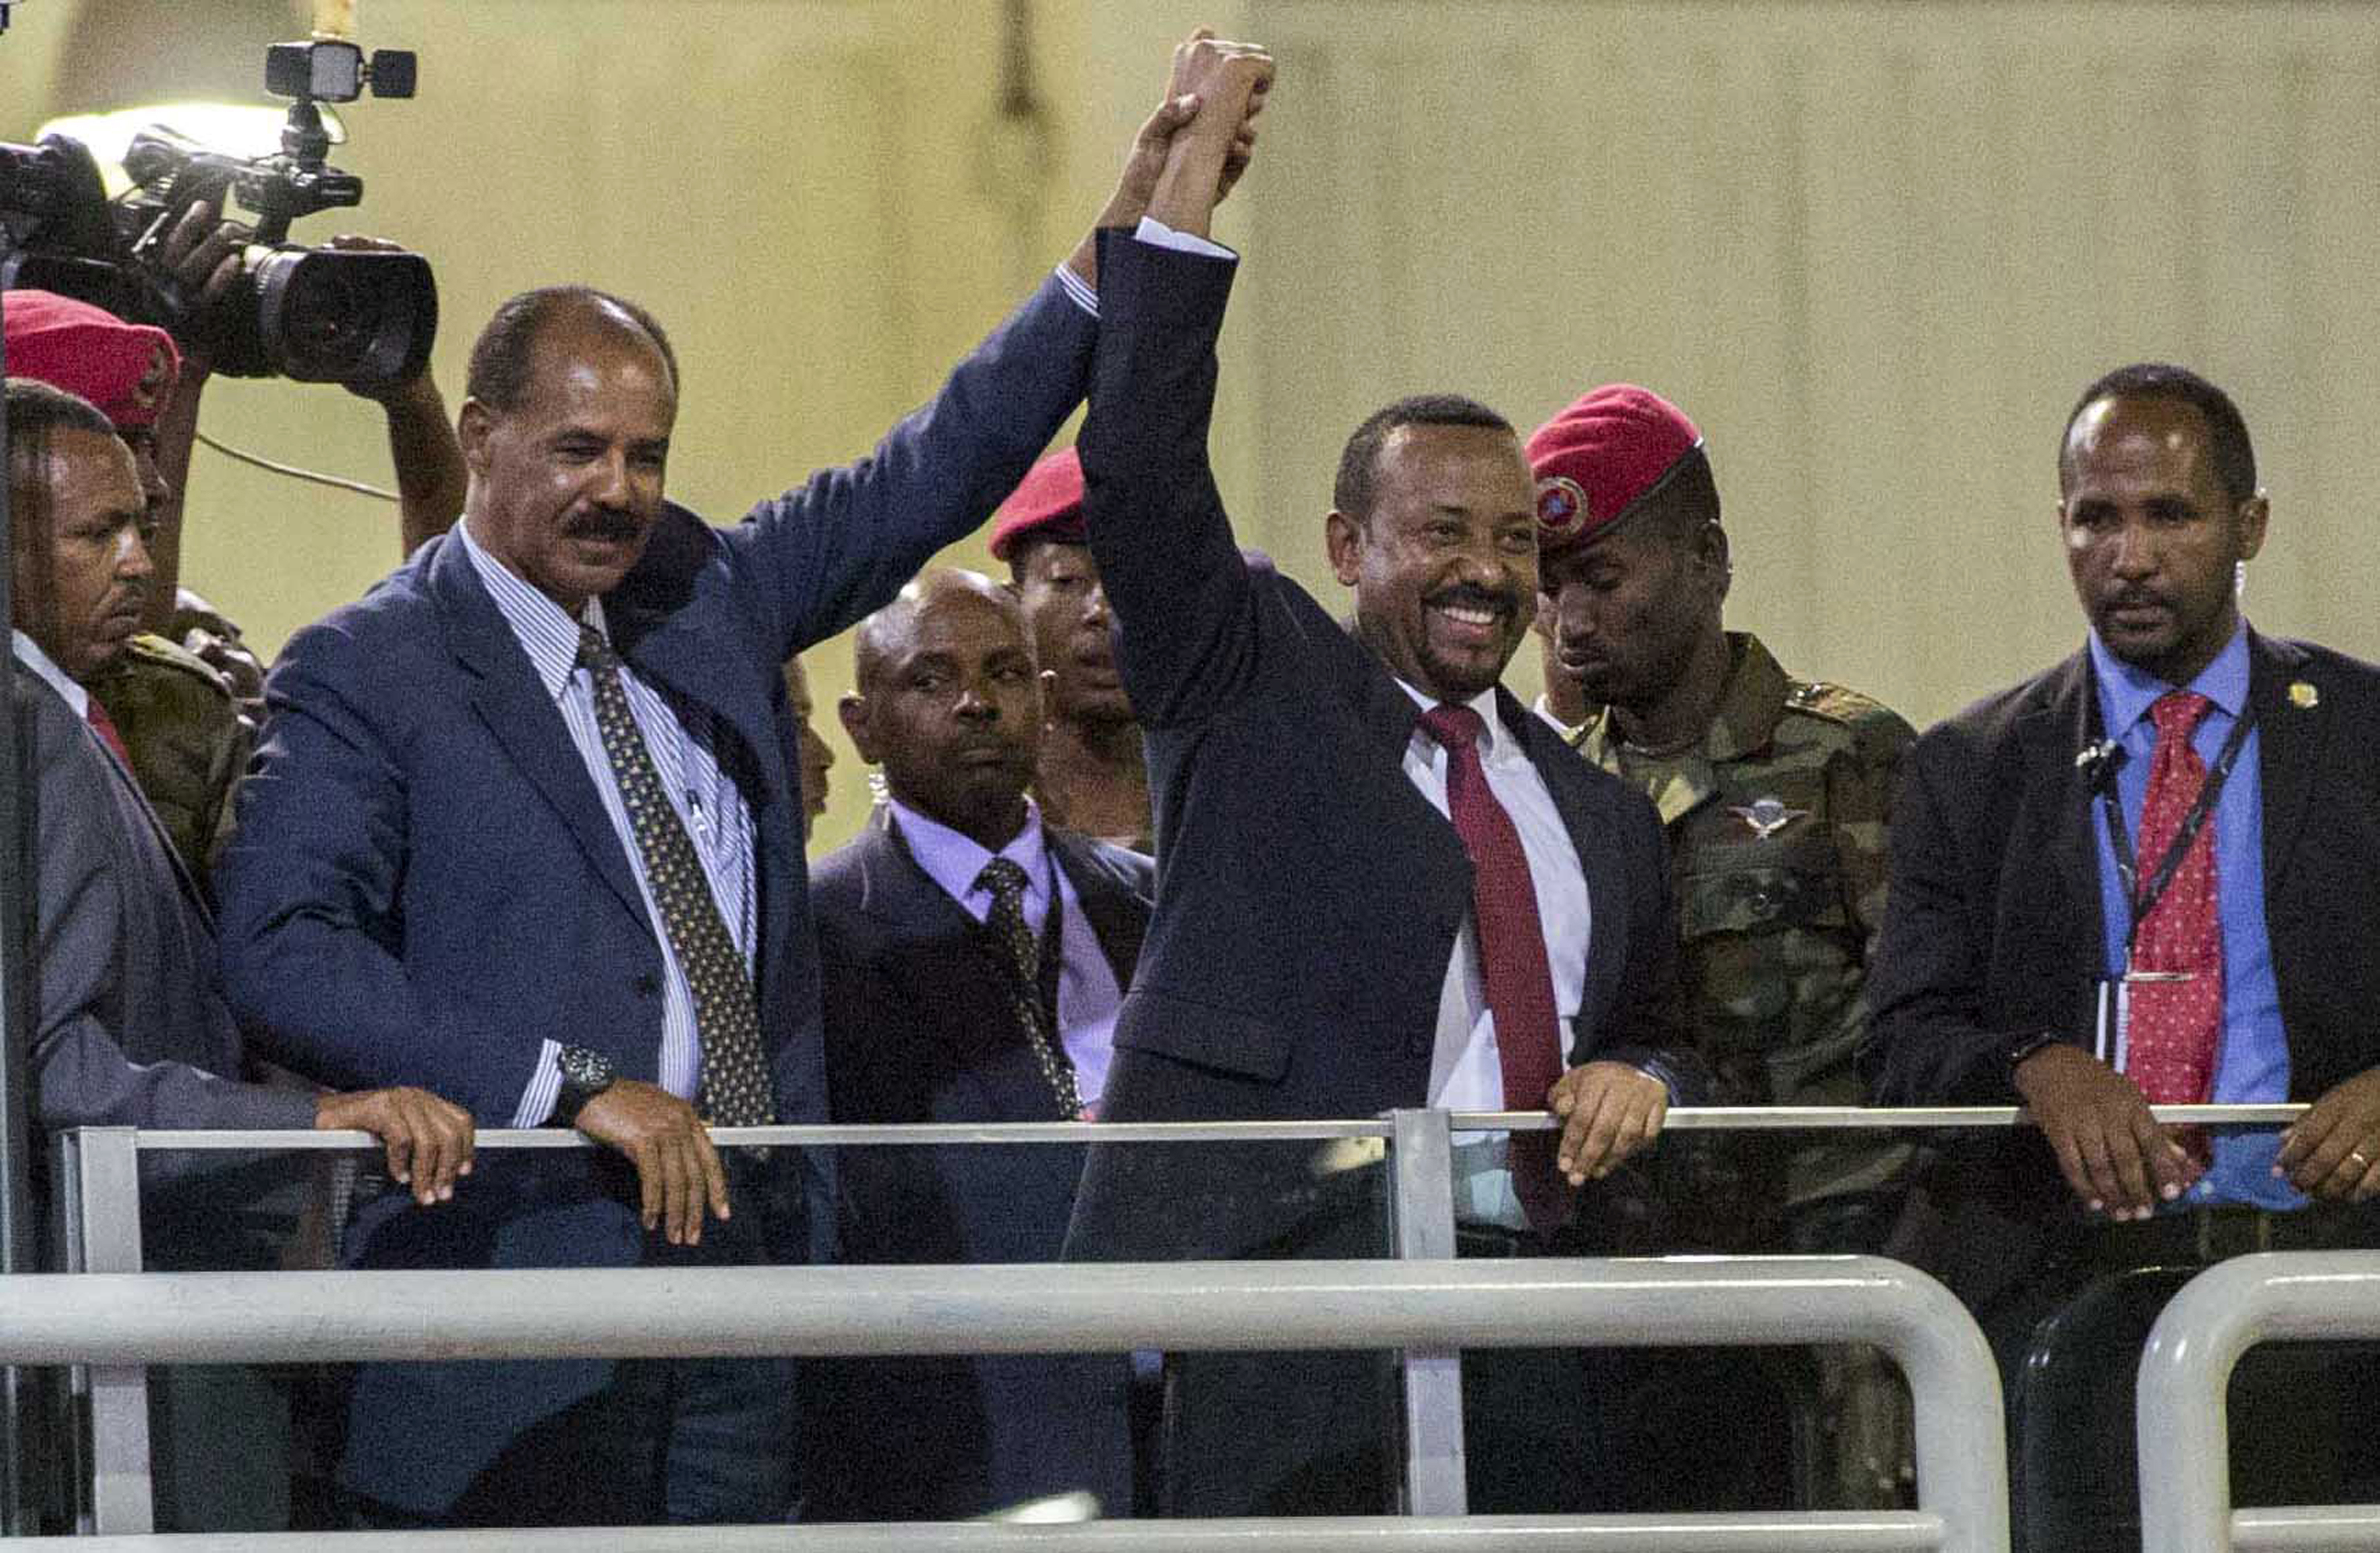 The 2019 Nobel Peace Prize was given to Ethiopian Prime Minister Abiy Ahmed on Friday Oct. 11, 2019.